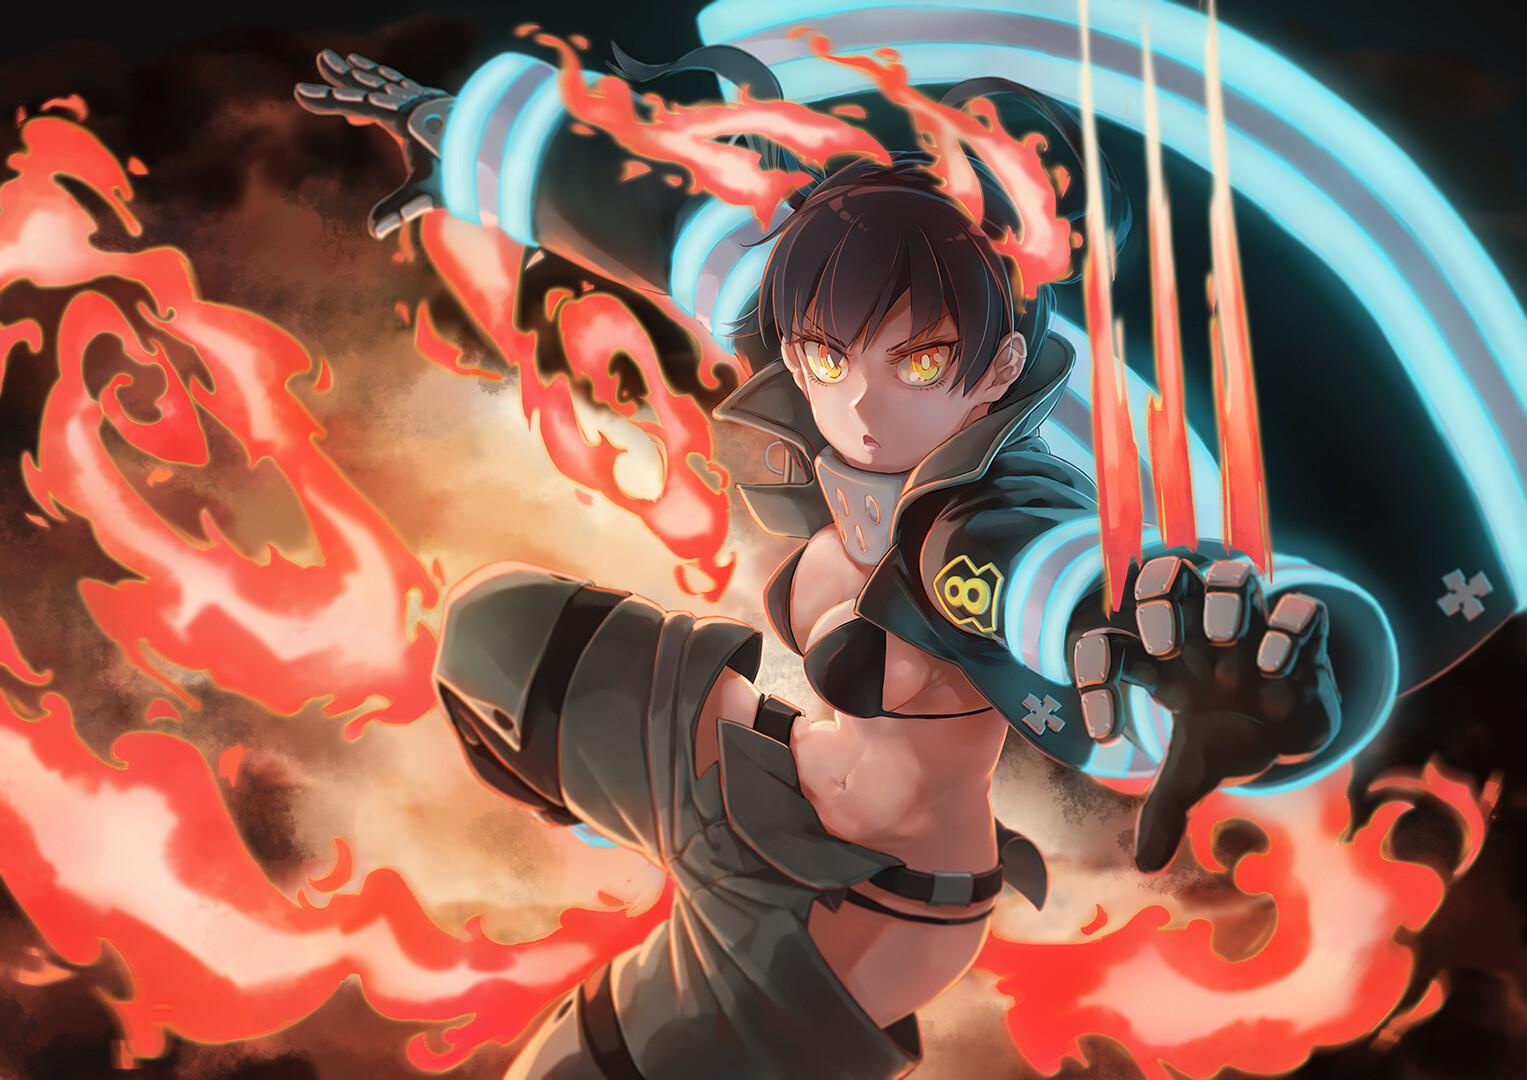 Fire Force Desktop Wallpapers Wallpaper Cave Check out this fantastic collection of fire force wallpapers, with 38 fire force background images for your desktop, phone or tablet. fire force desktop wallpapers